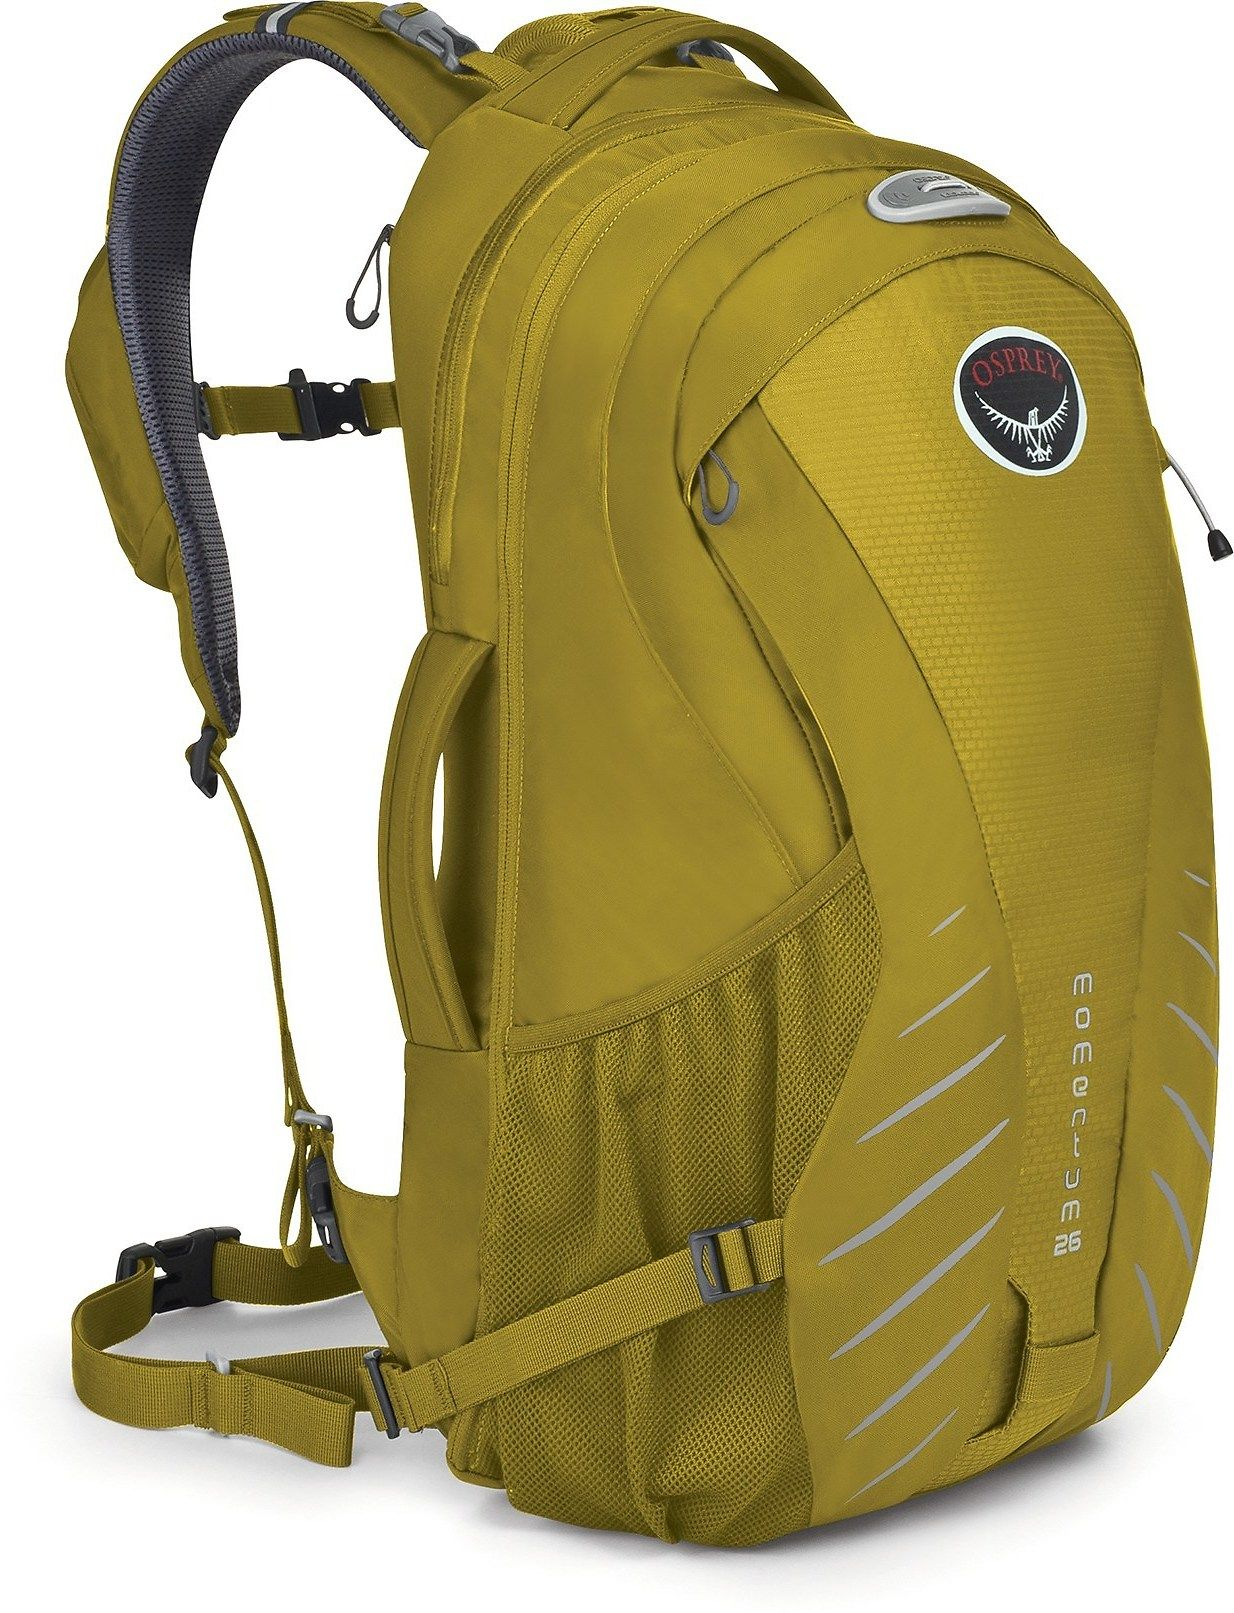 rei day pack - Google Search